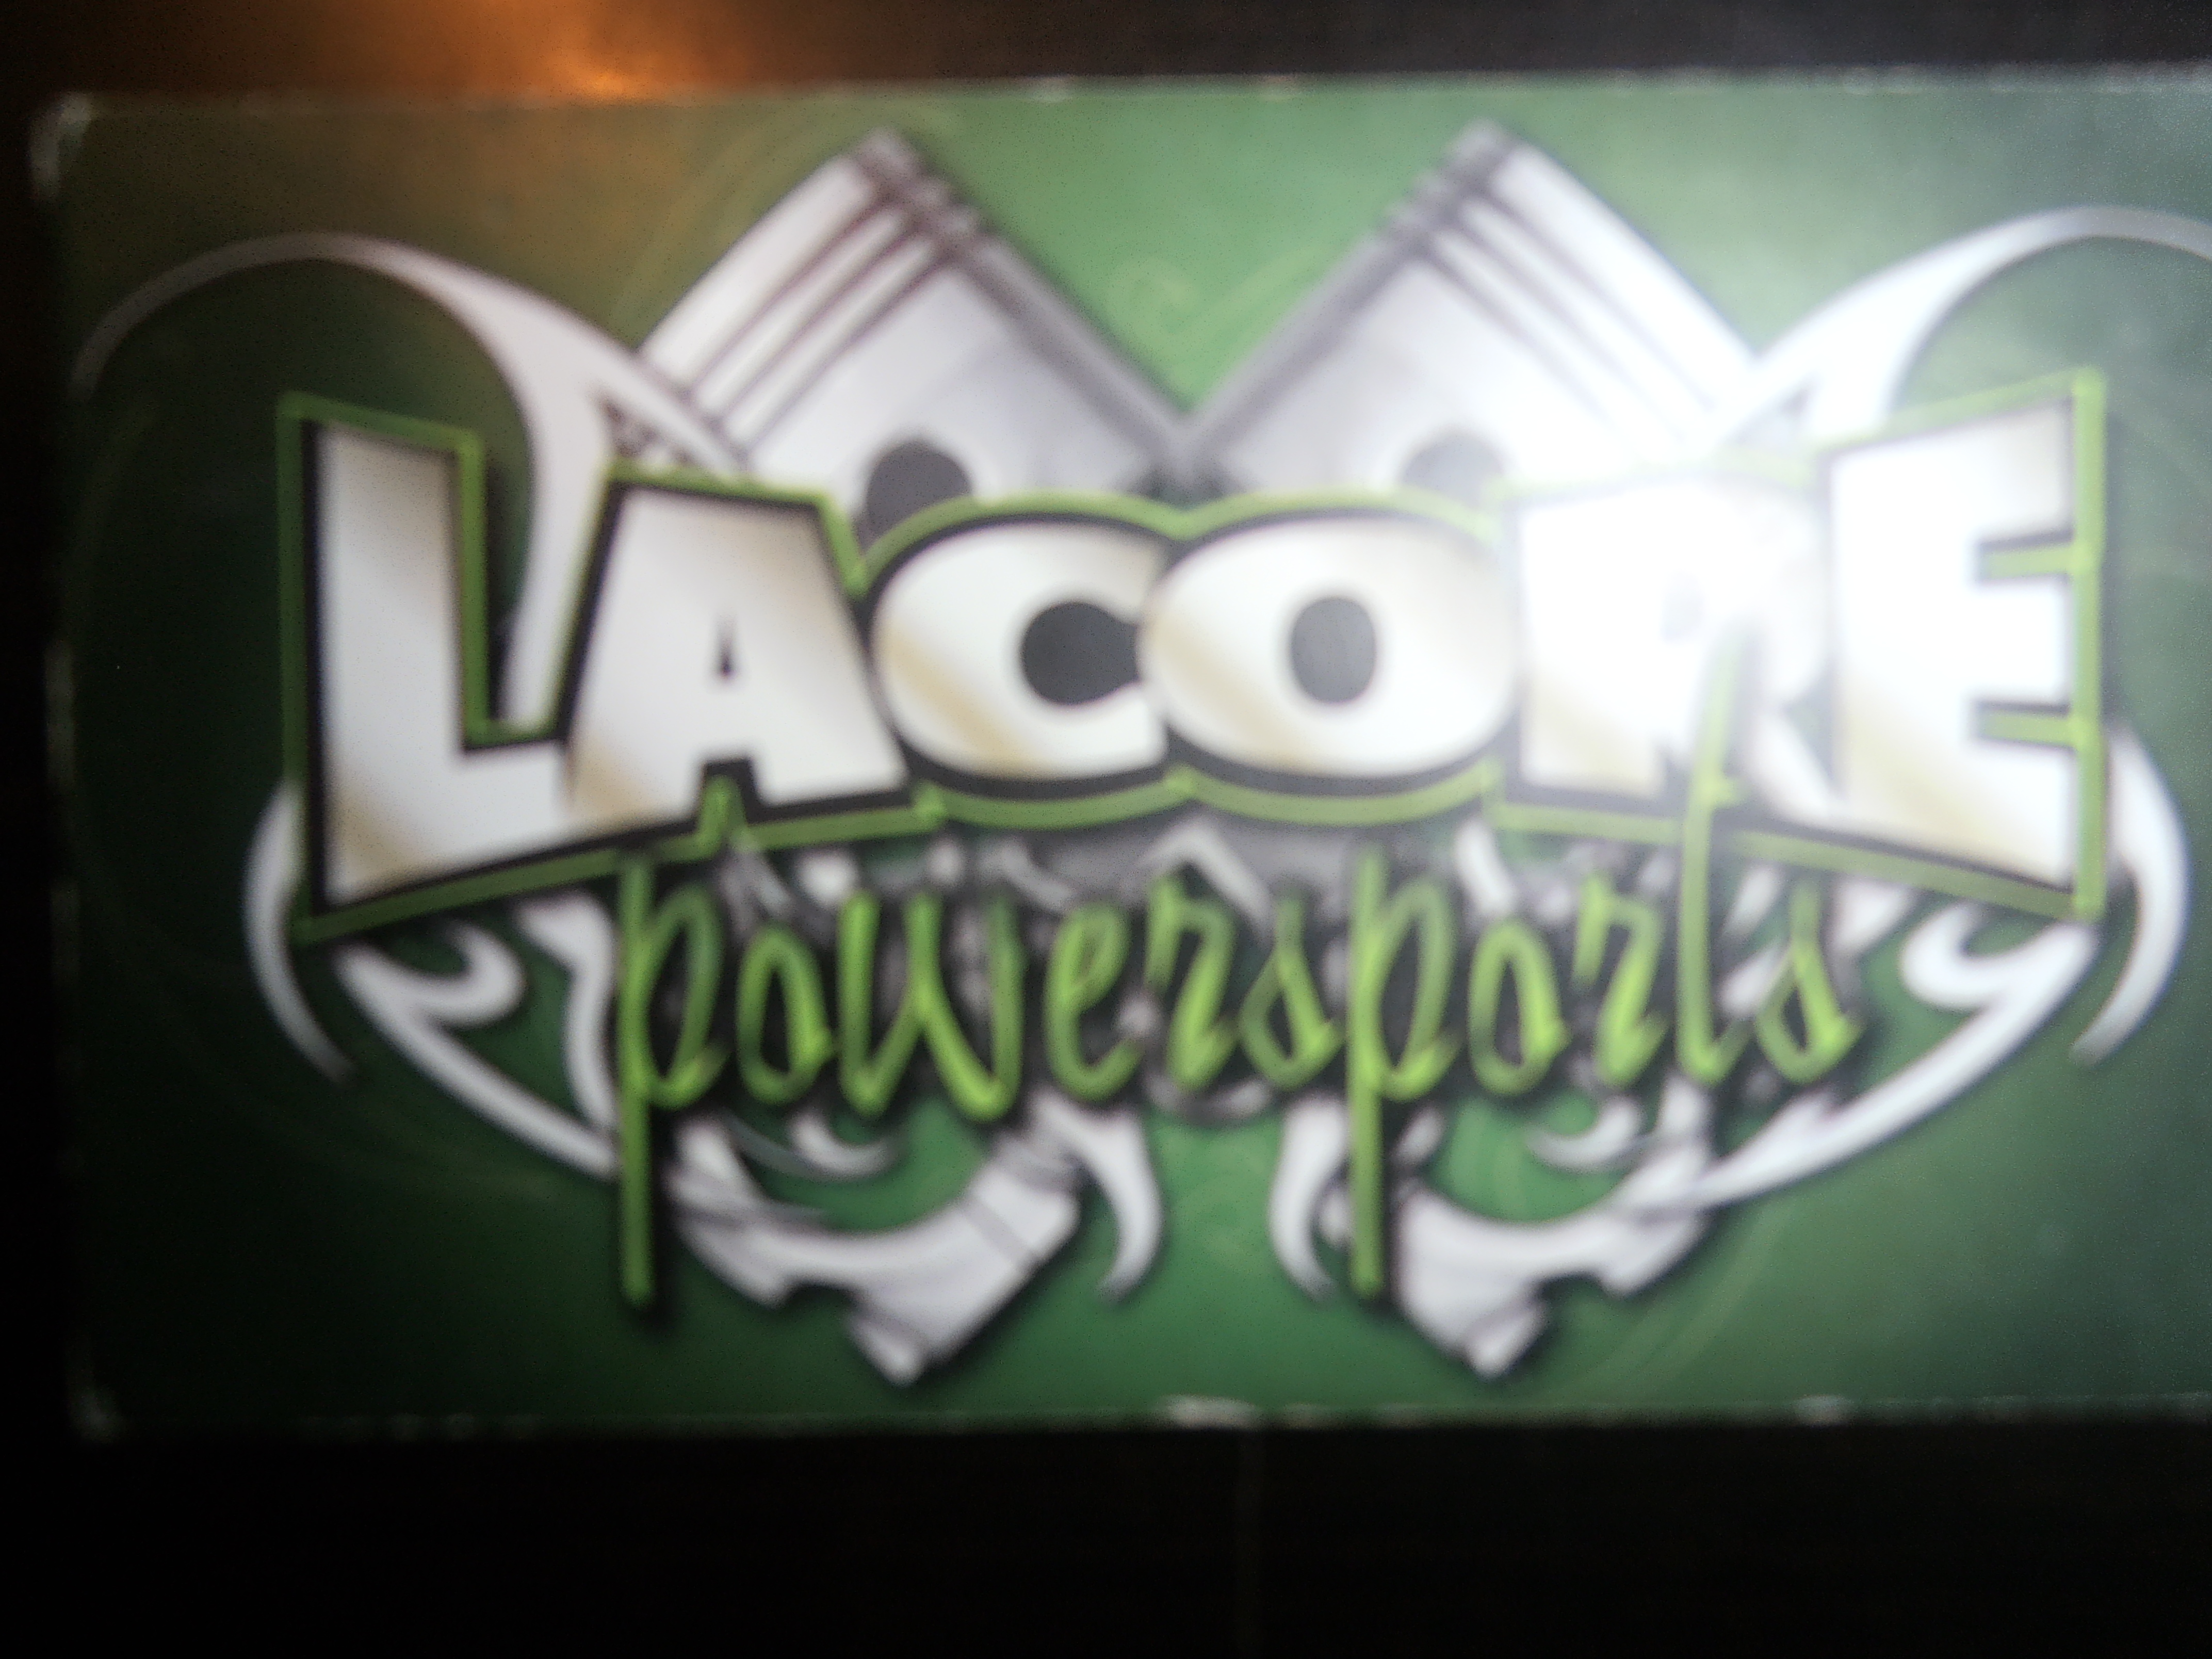 LaCore Power Sports, LLC